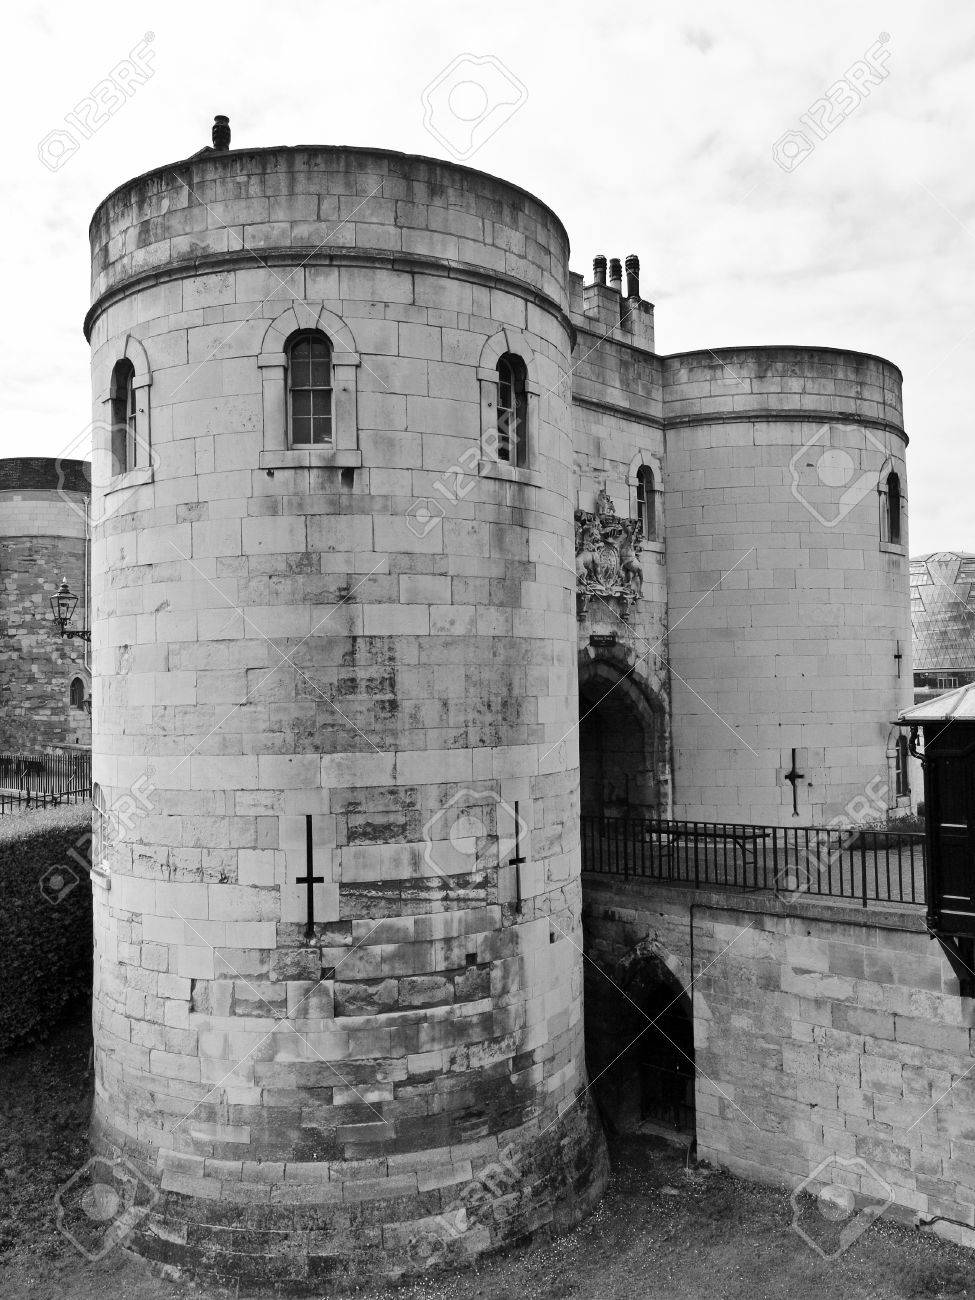 The Tower of London medieval castle and prison Stock Photo - 10426500